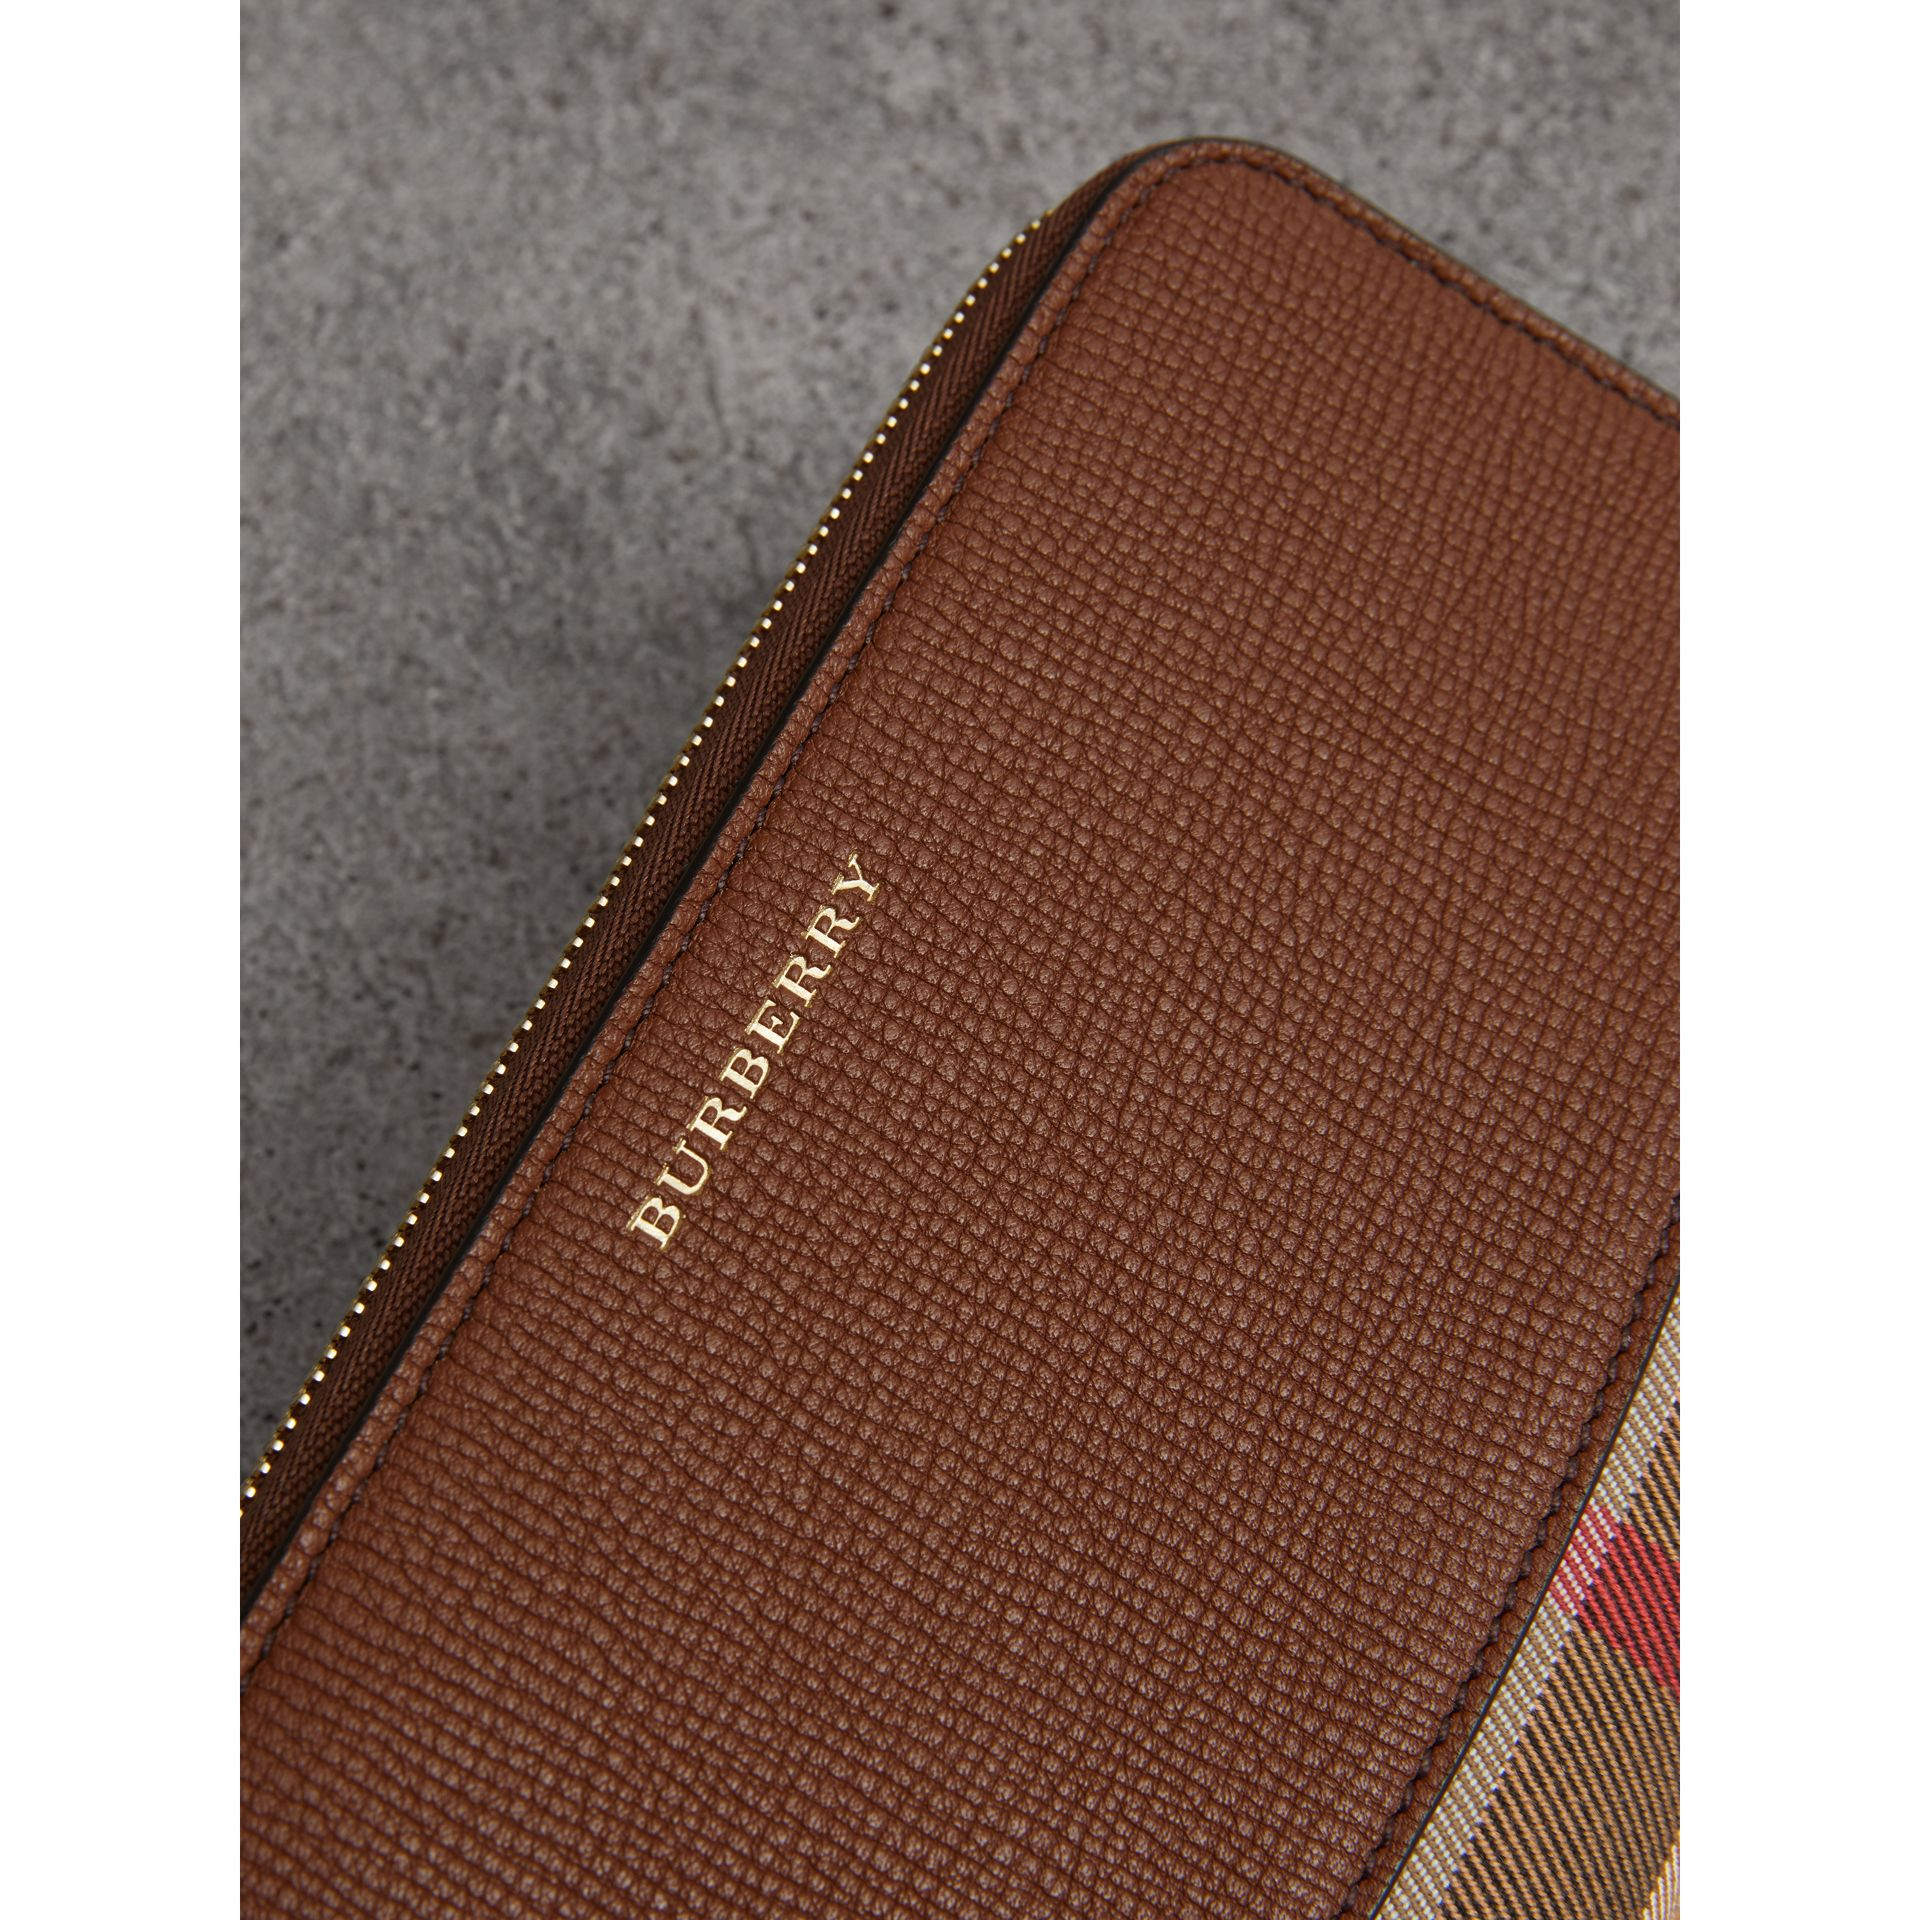 House Check and Leather Ziparound Wallet in Brown Ochre - Women | Burberry Hong Kong - gallery image 1